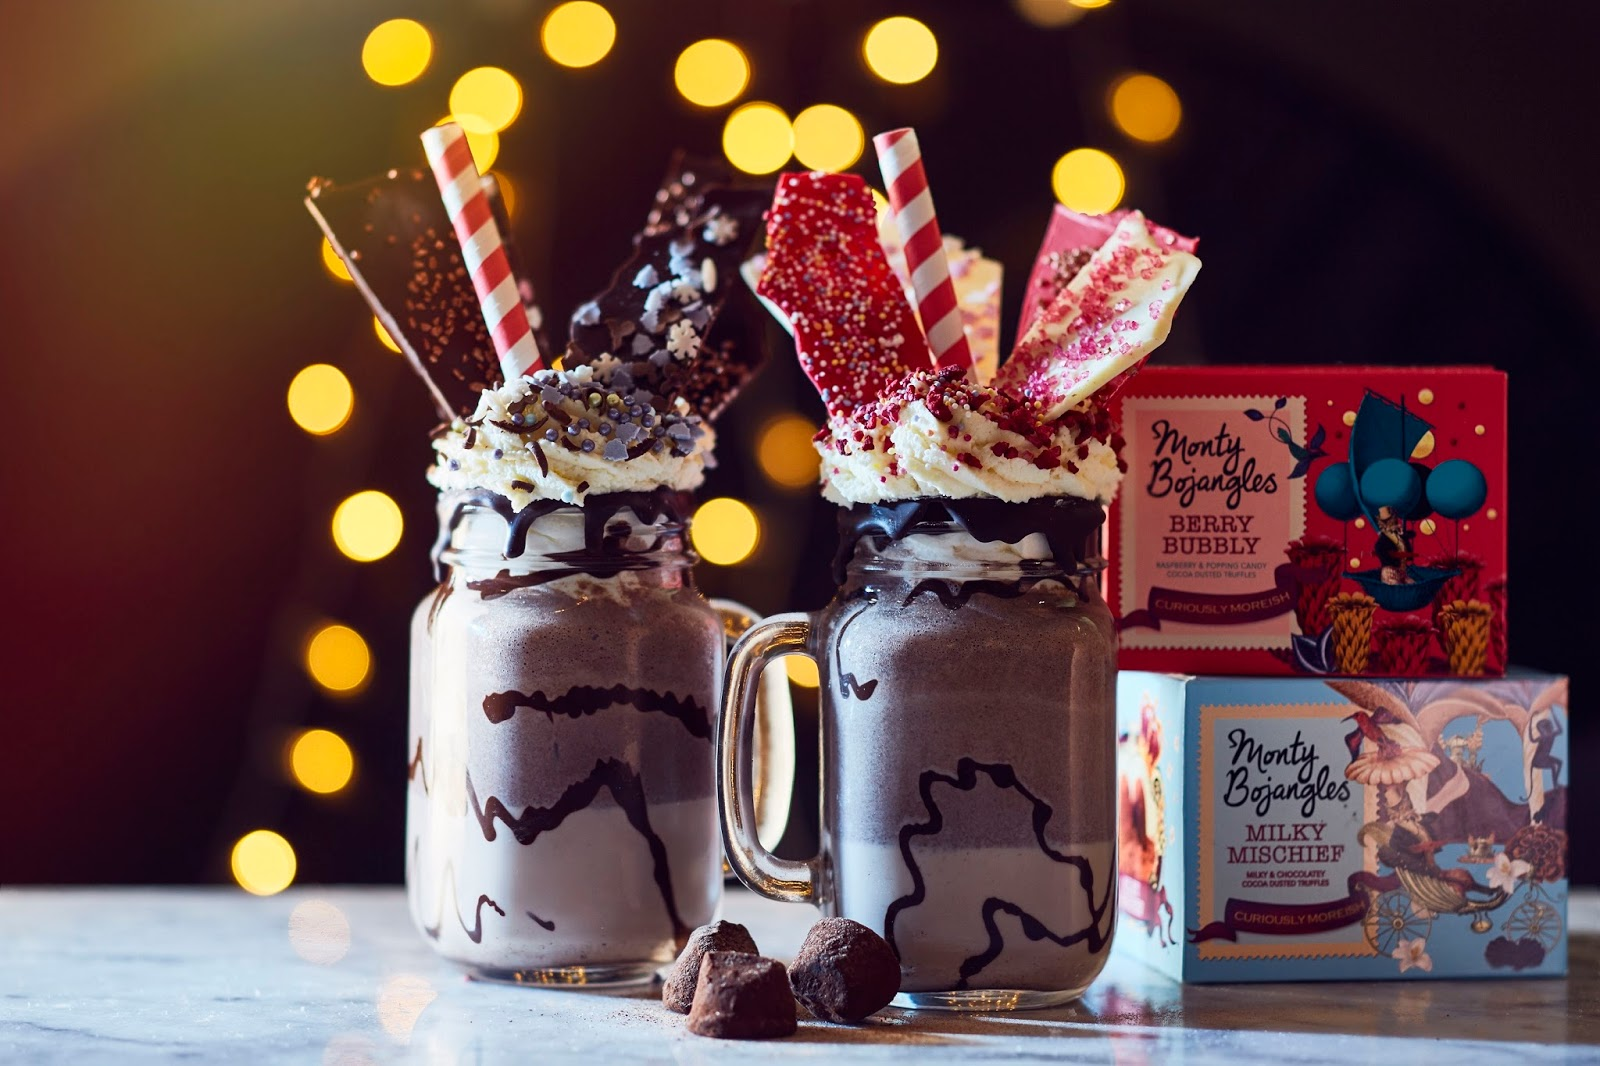 Monty Bojangles Freakshakes: Fancy Trying?